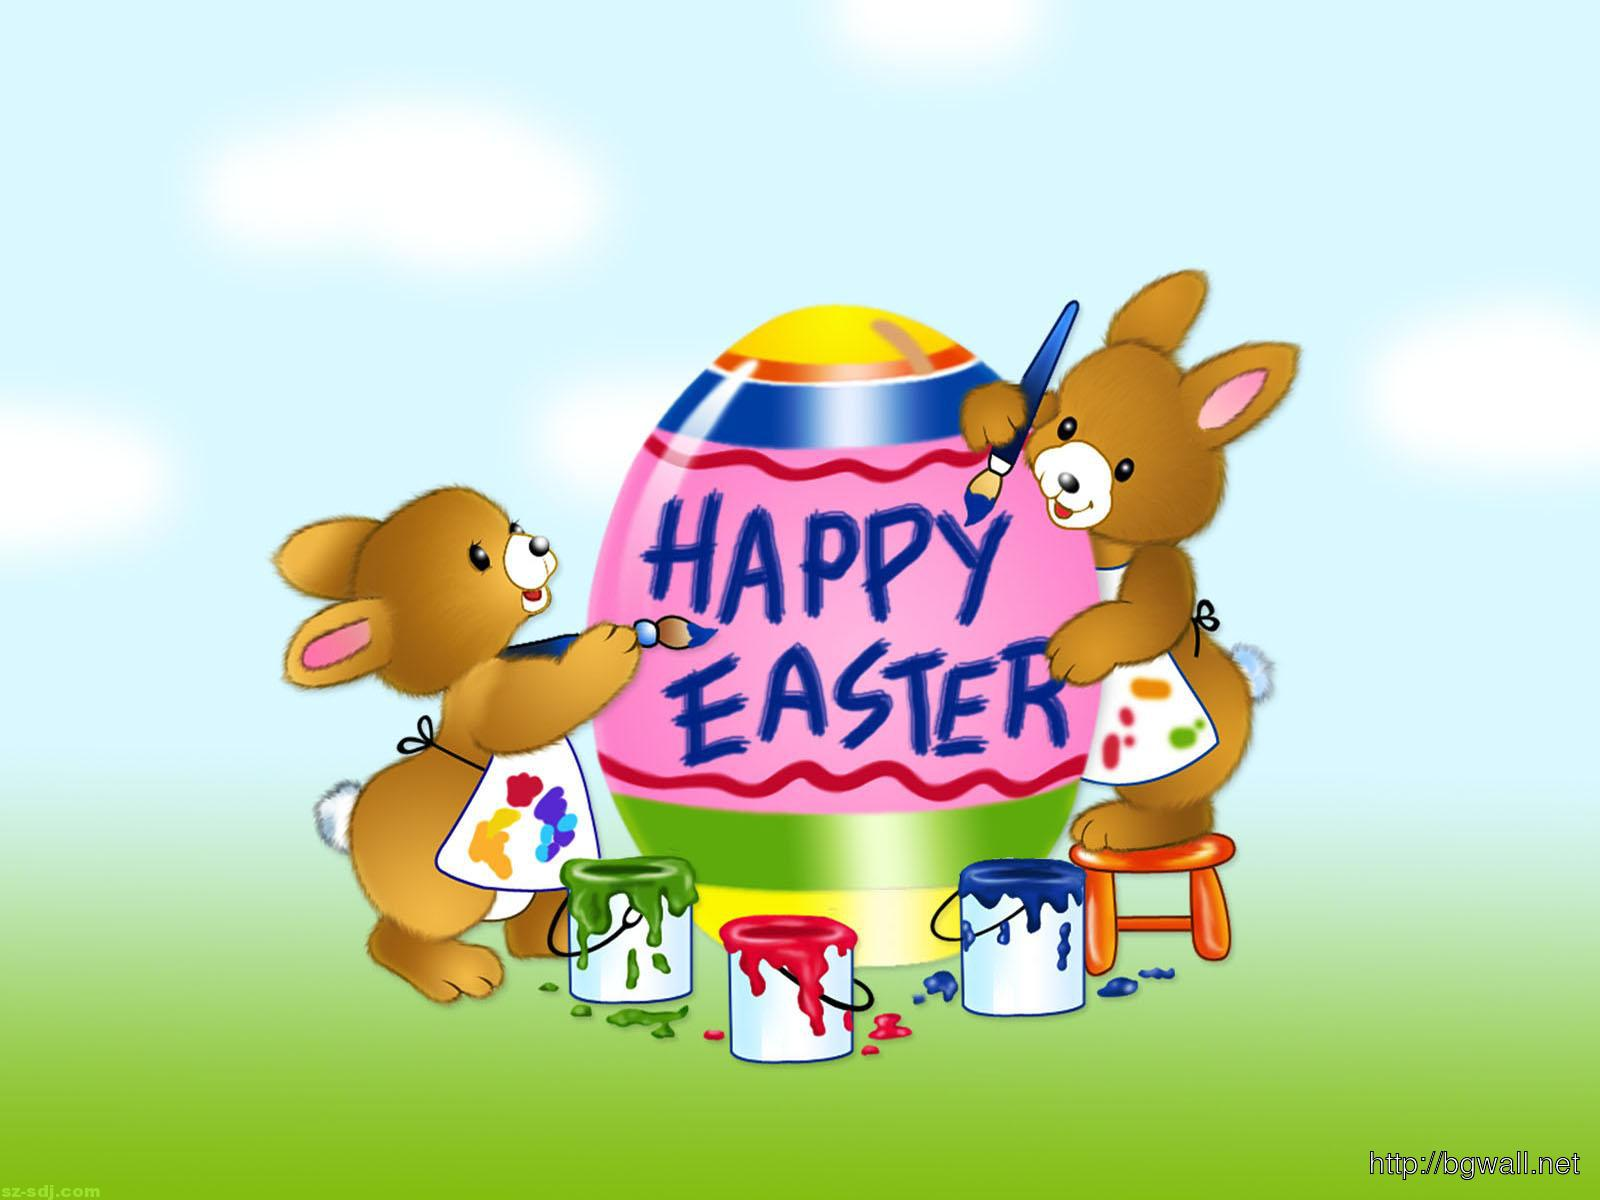 happy-easter-day-wallpaper-desktop-background-hd